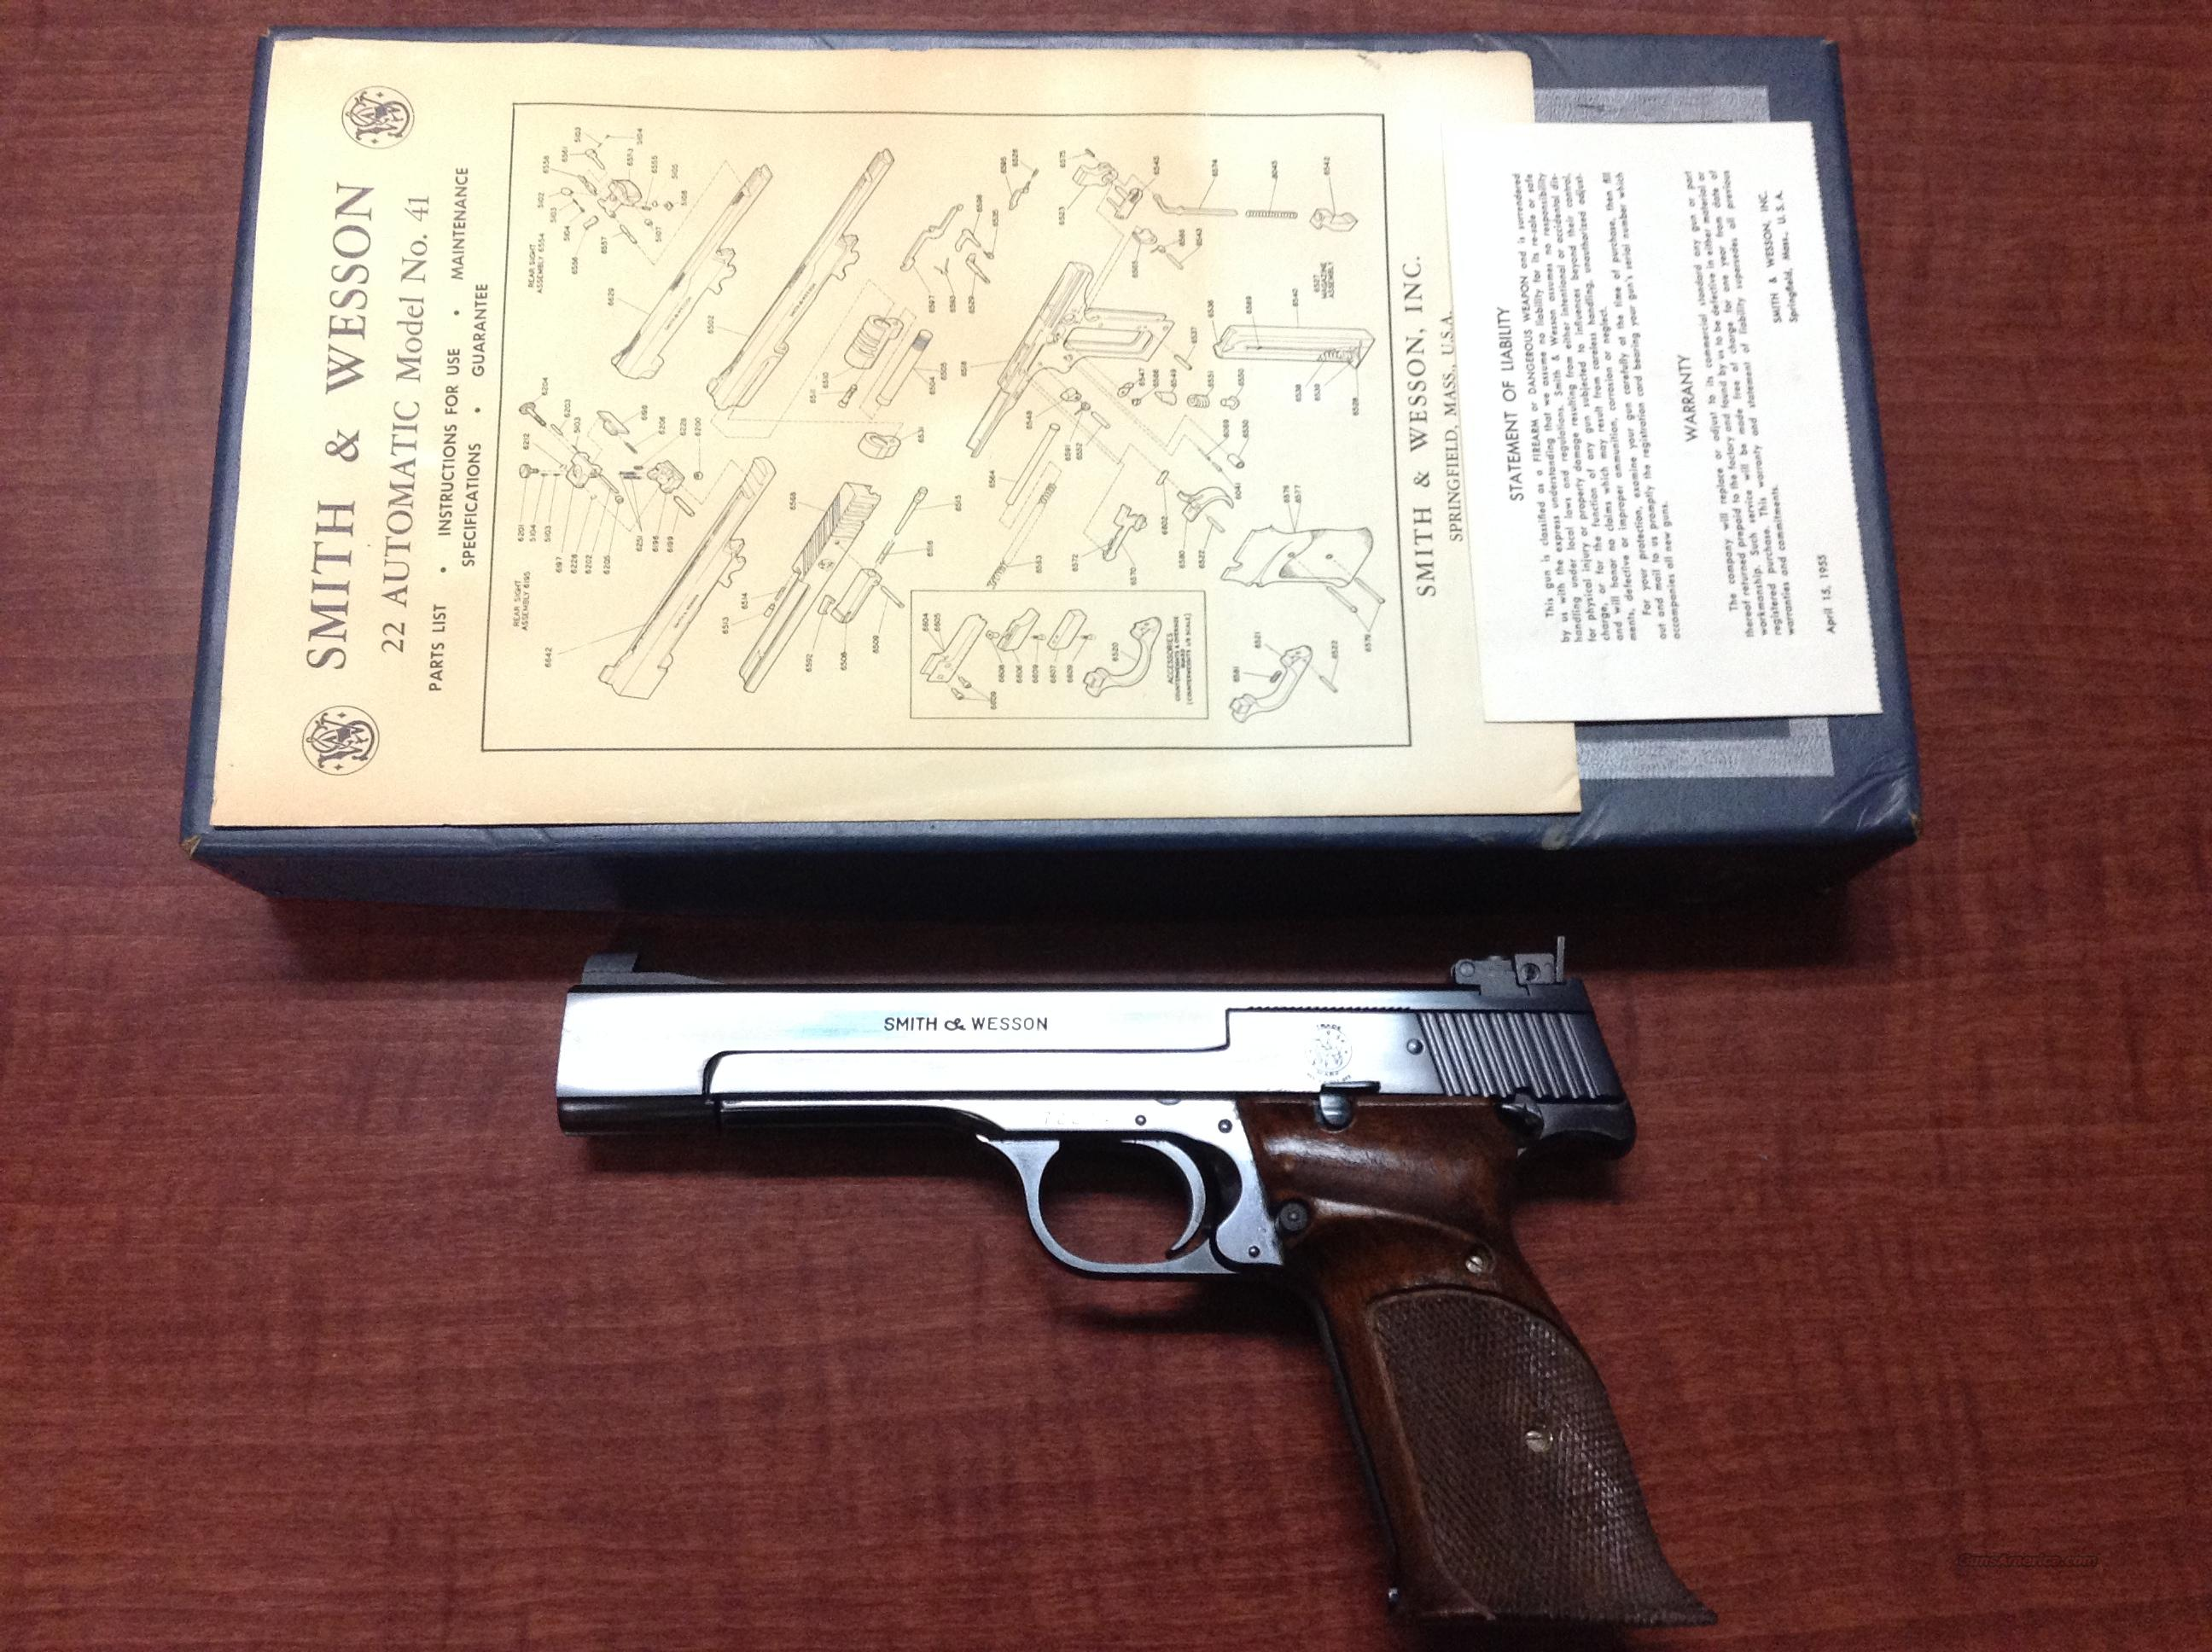 "Smith & Wesson Model 41 Target 22LR 5 1/2"" W/Box,Book,Warranty Card,Receipt 1965  Guns > Pistols > Smith & Wesson Pistols - Autos > .22 Autos"